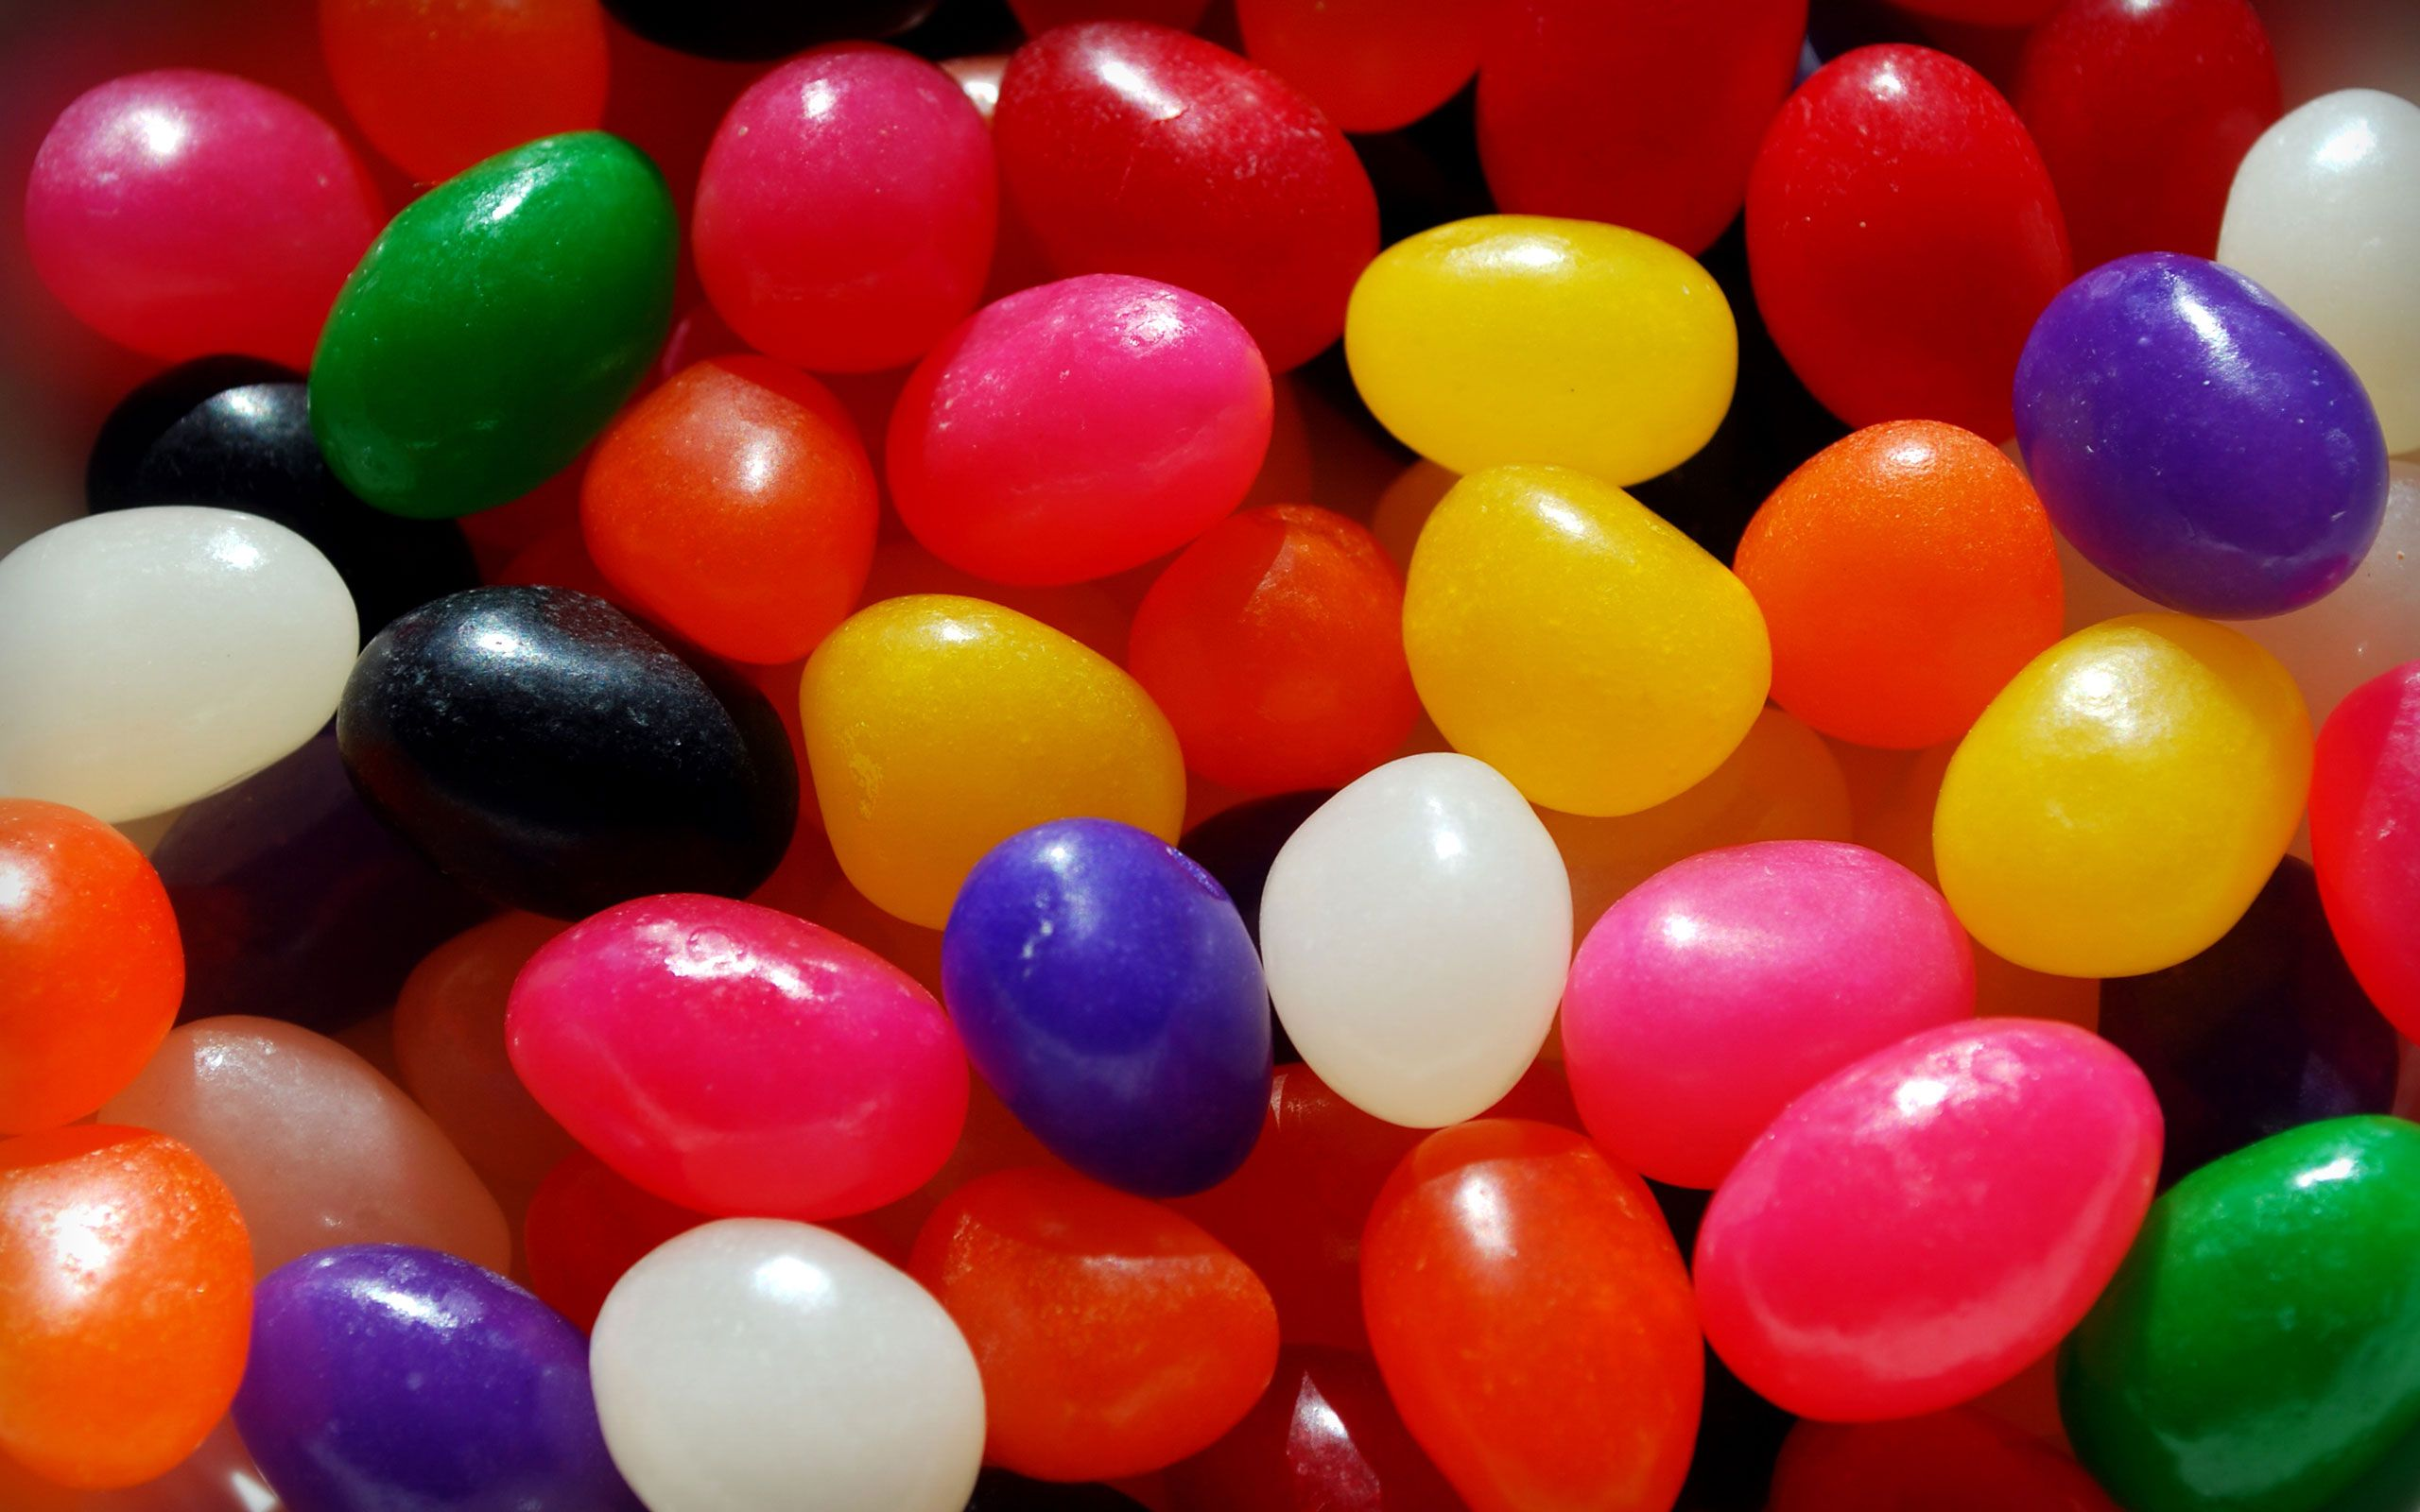 Colorful Candy Wallpapers   Top Colorful Candy Backgrounds 2560x1600